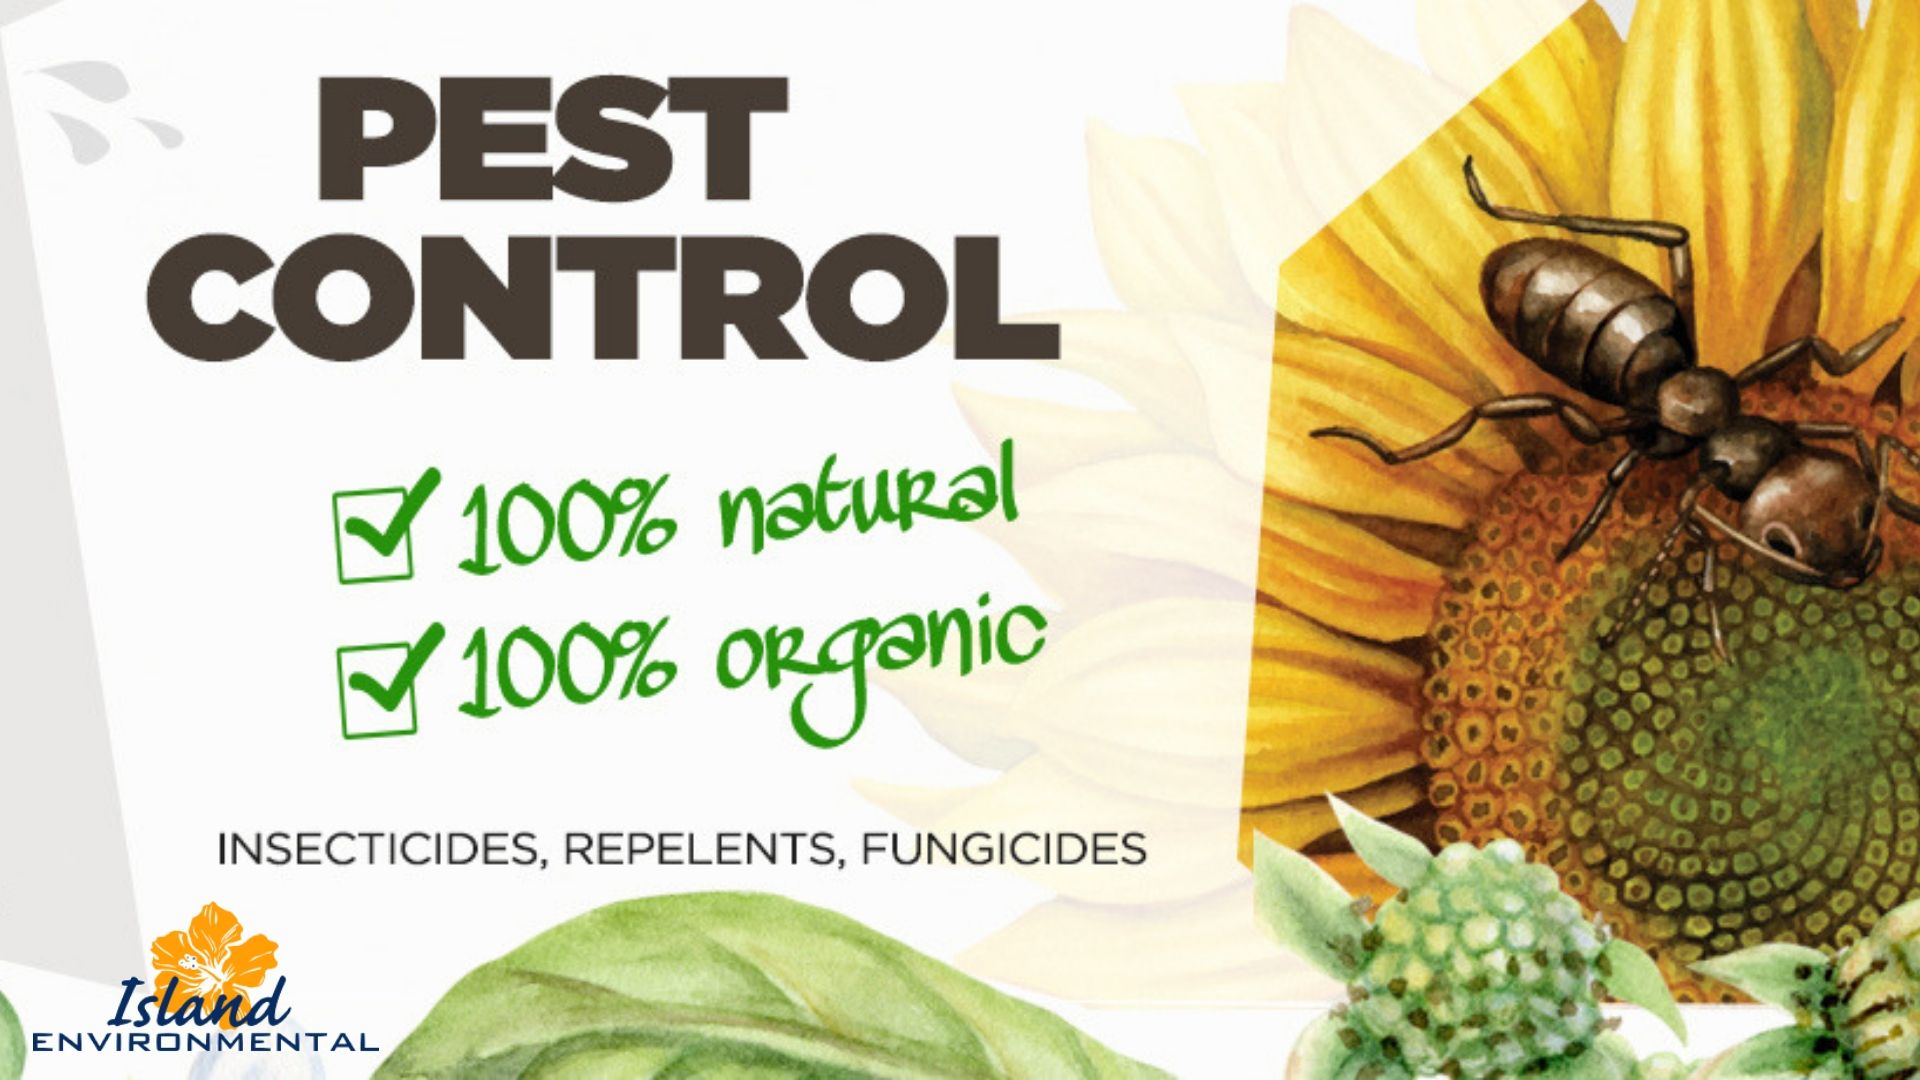 When You Need A Professional Team To Eliminate Pests In Your Residence Or Commercial Facility Contact Island Environmental Pe Pest Control Organic Insecticide Mosquito Larvae